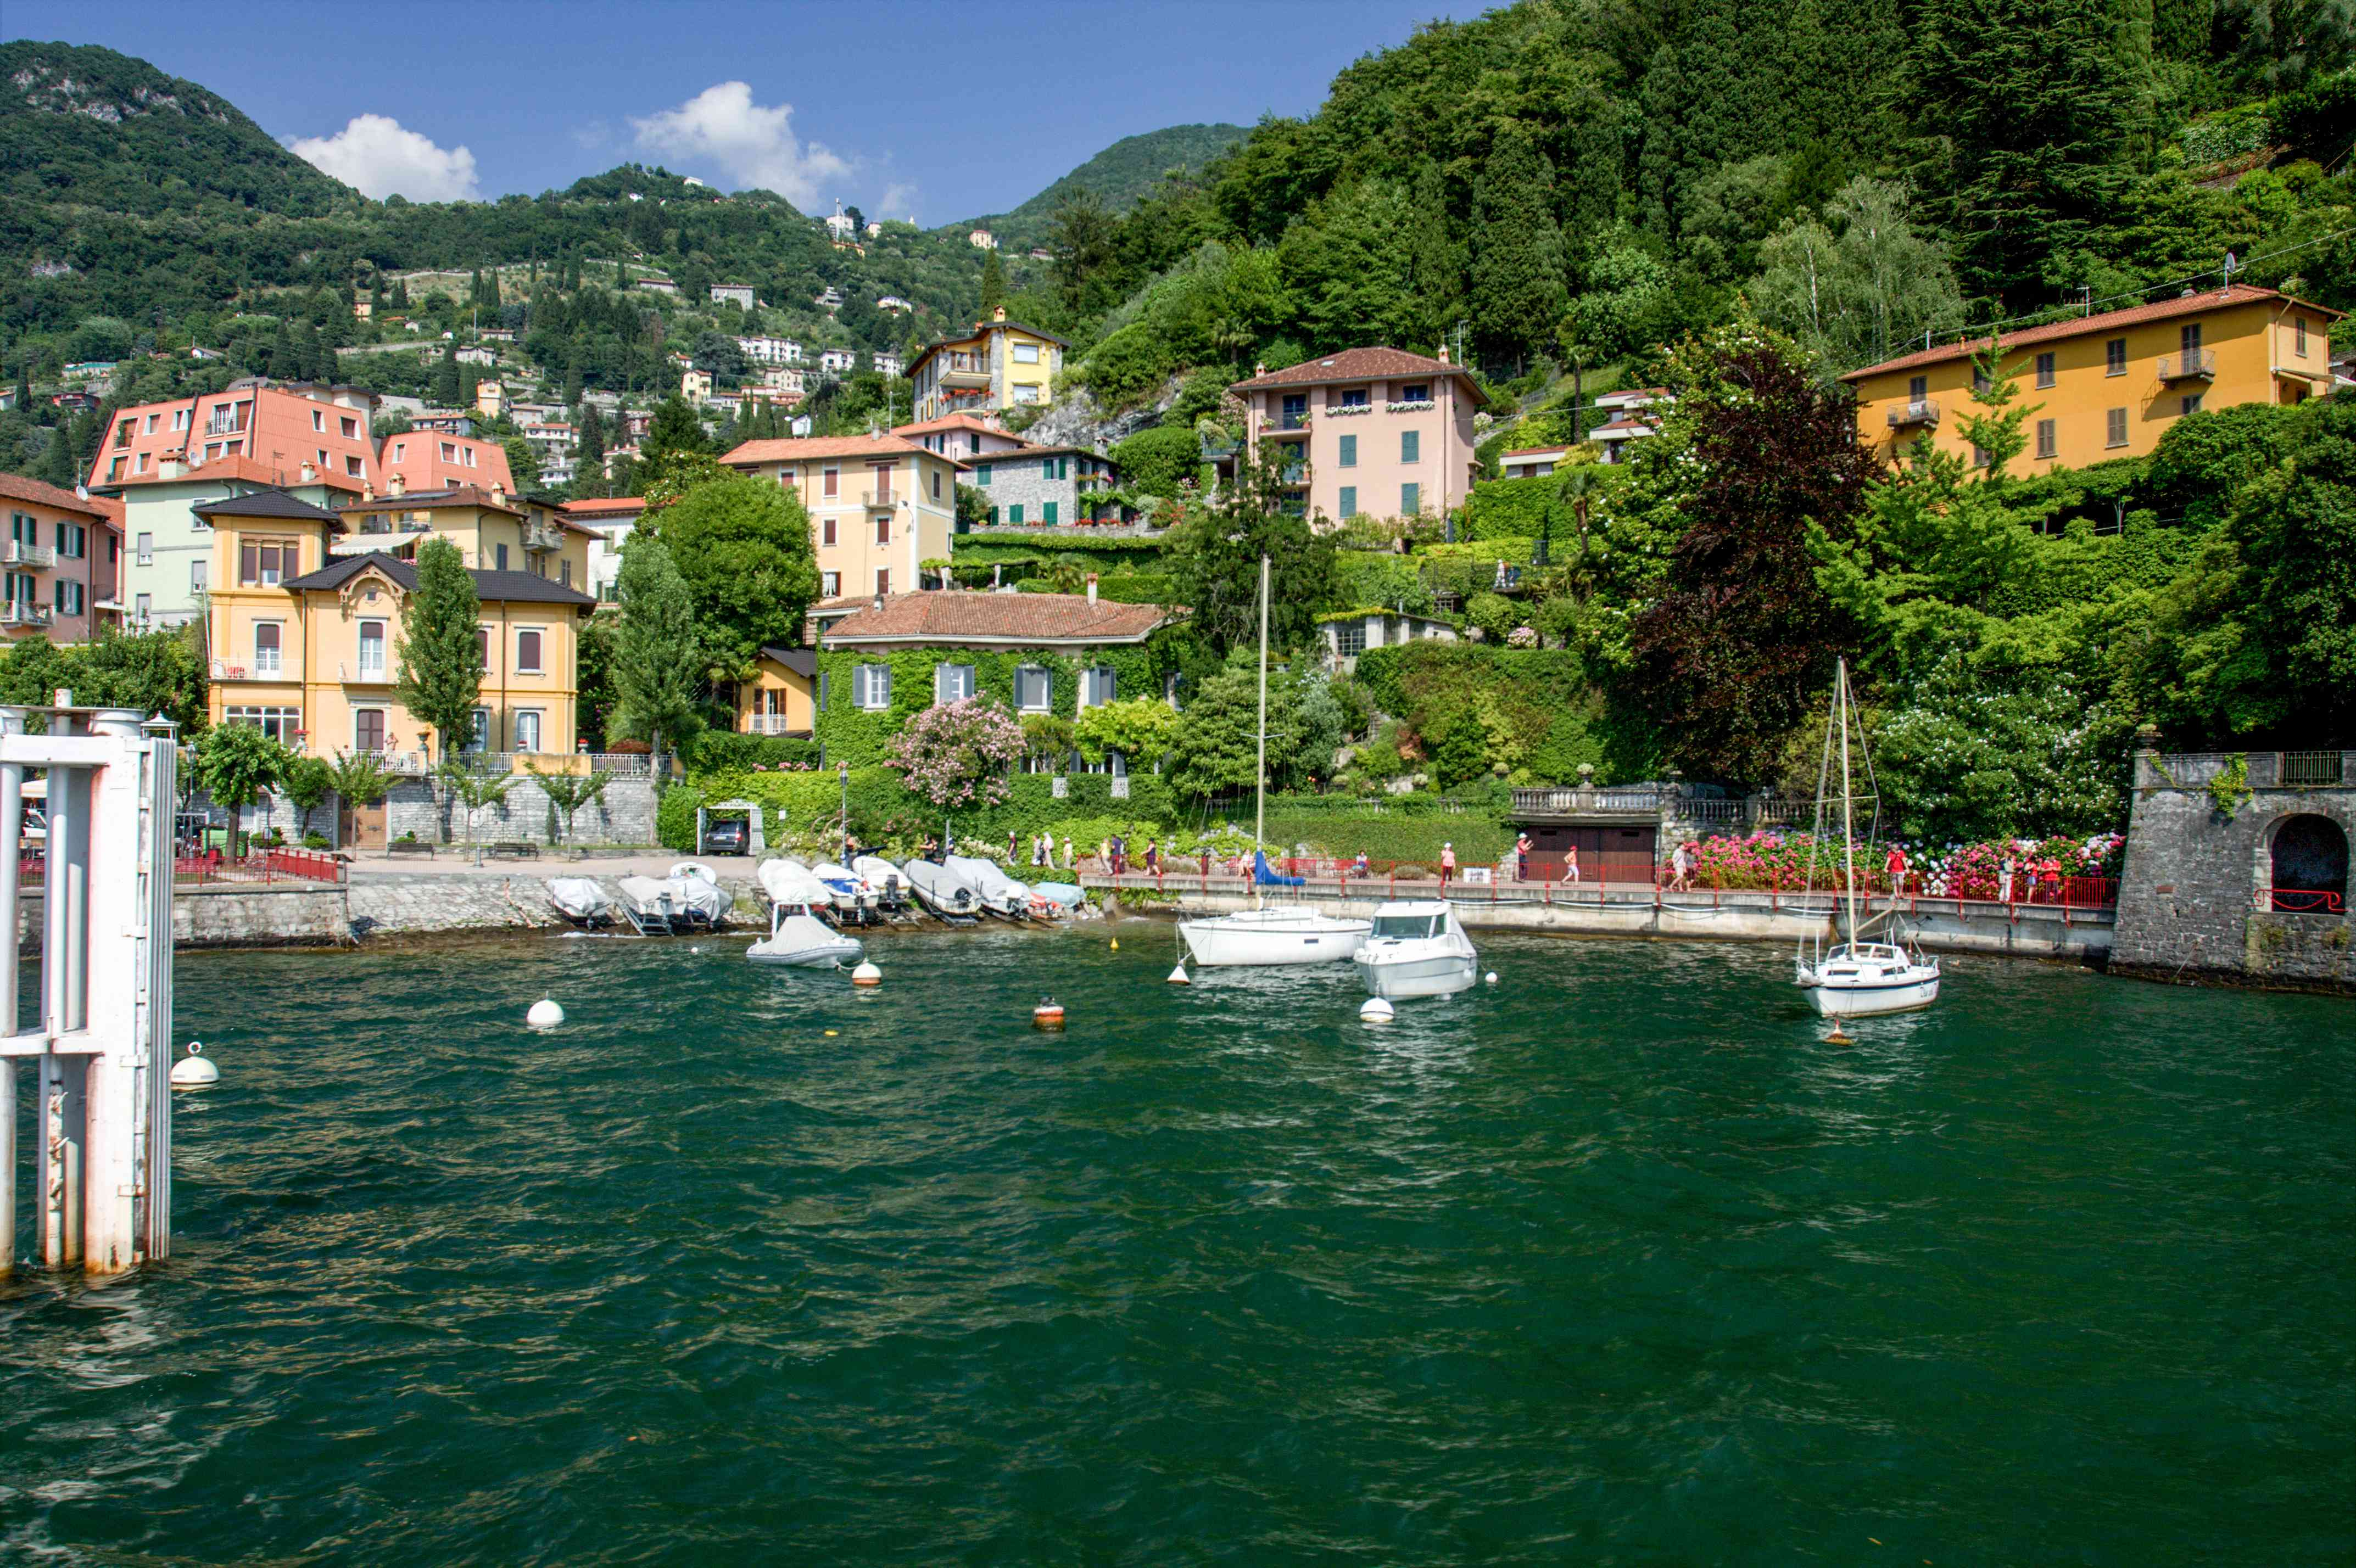 Boats on the water in Varenna